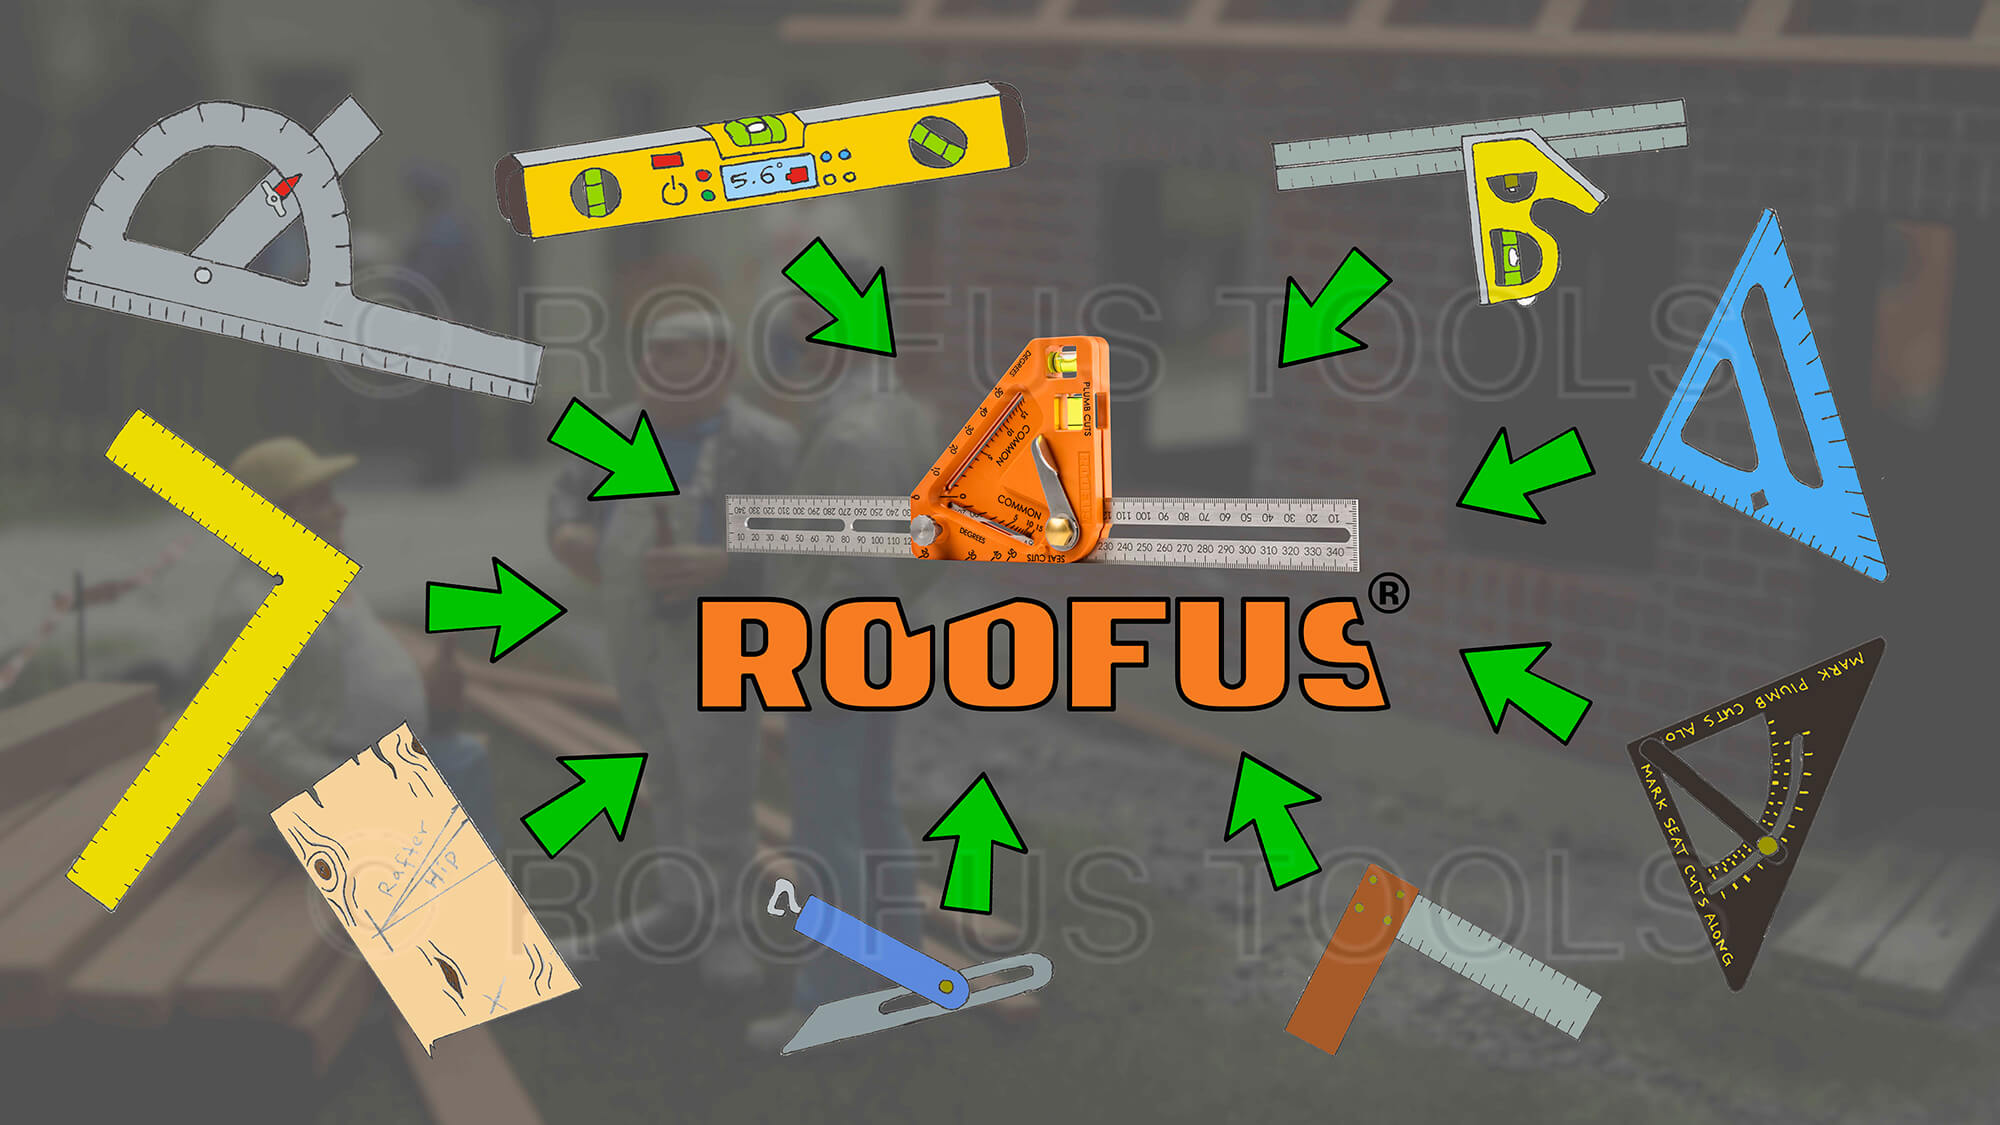 What tools can the roofus replace?